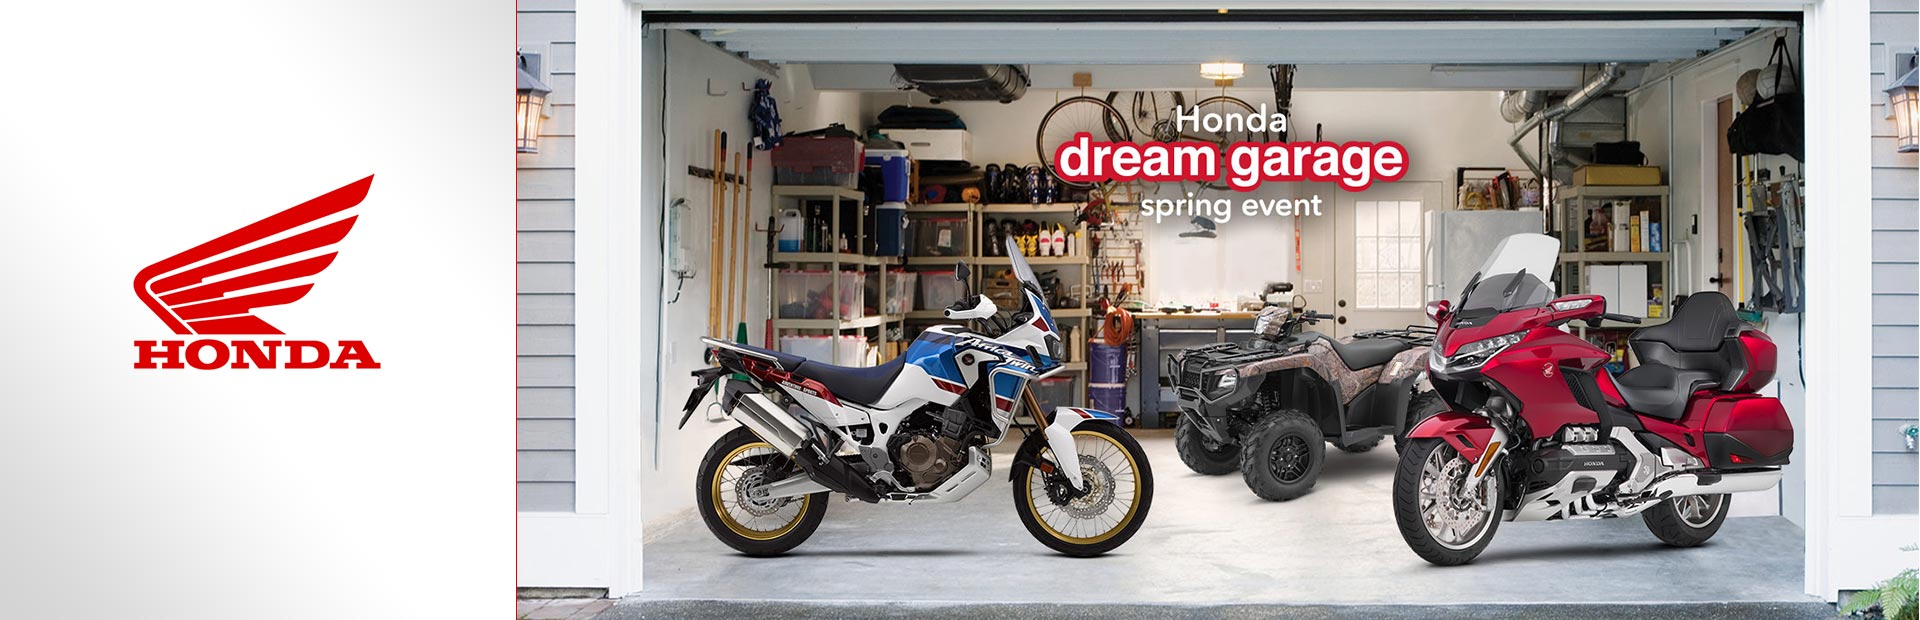 Honda: Dream Garage Spring Event - ATV/SXS